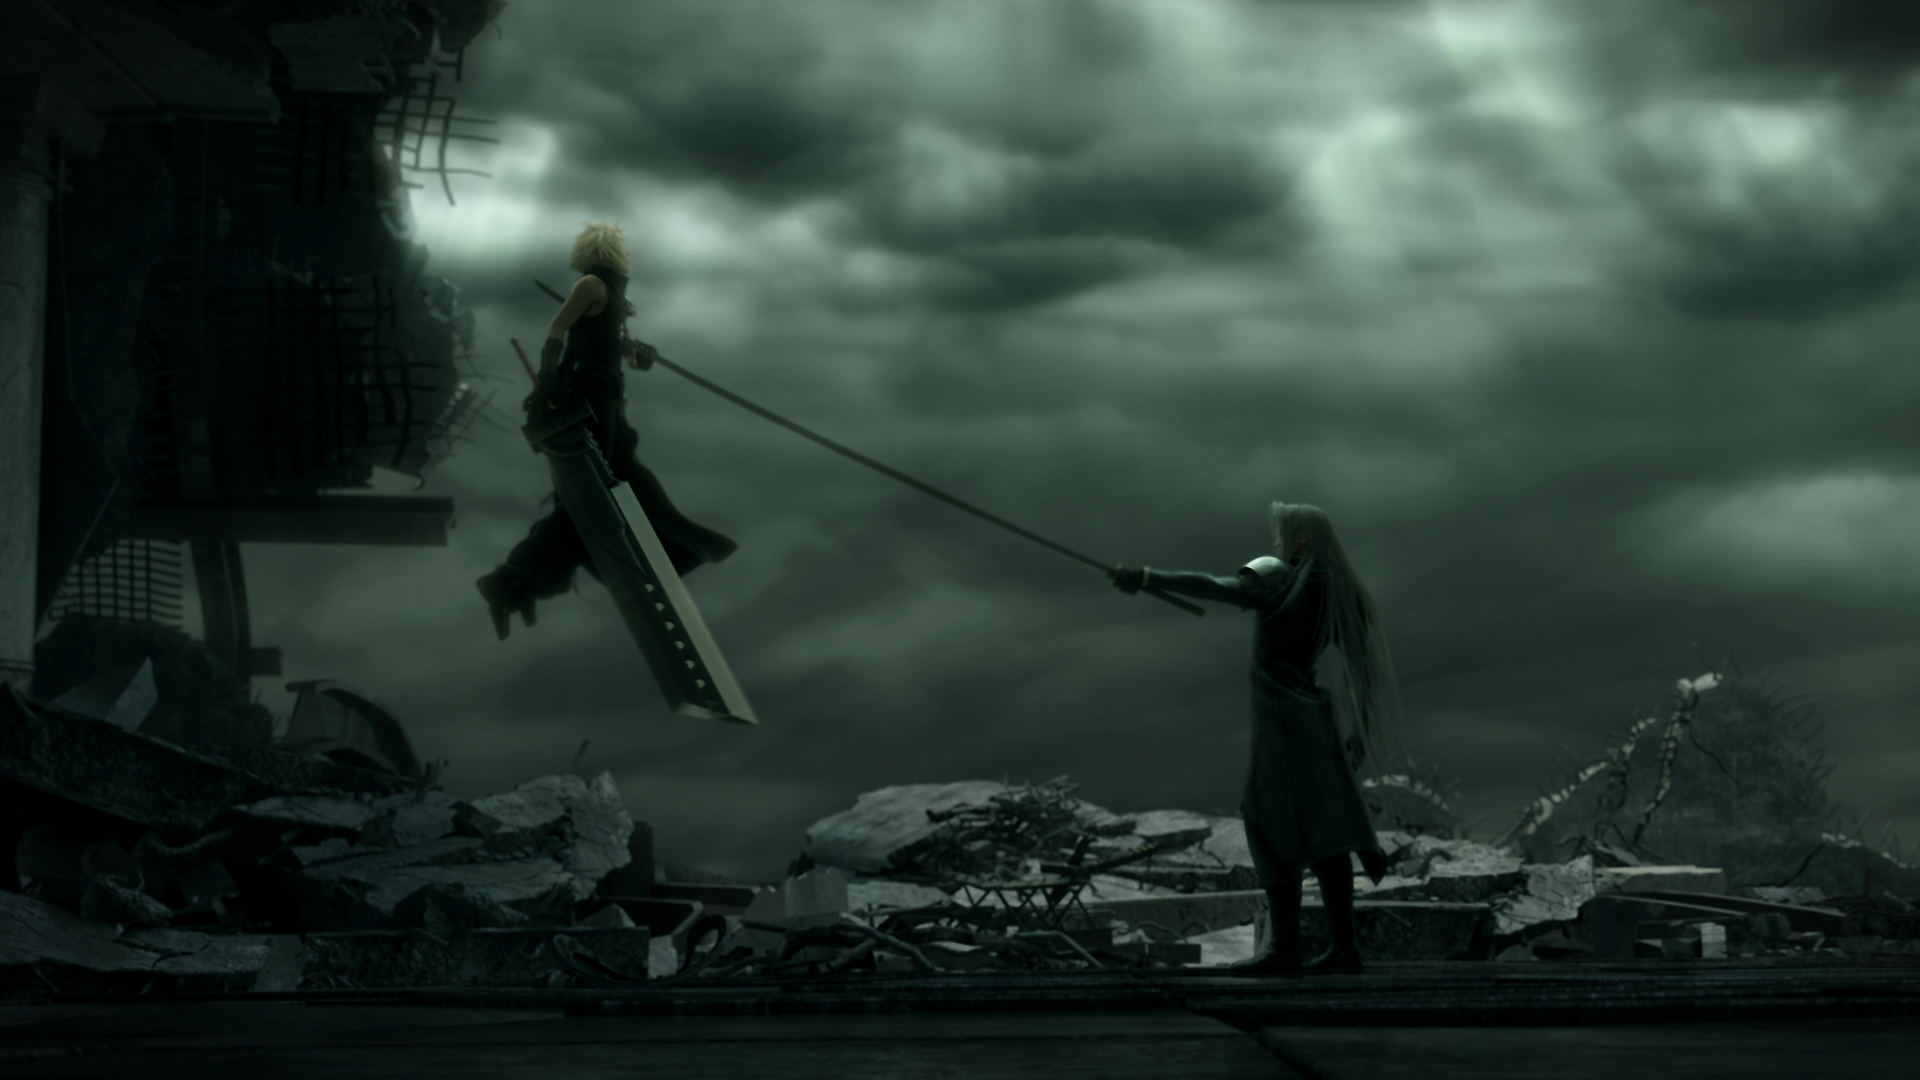 89 final fantasy vii advent children hd wallpapers backgrounds - Hd Wallpaper And Background Photos Of Cloud Vs Sephiroth For Fans Of Final Fantasy Vii Images Advent Children